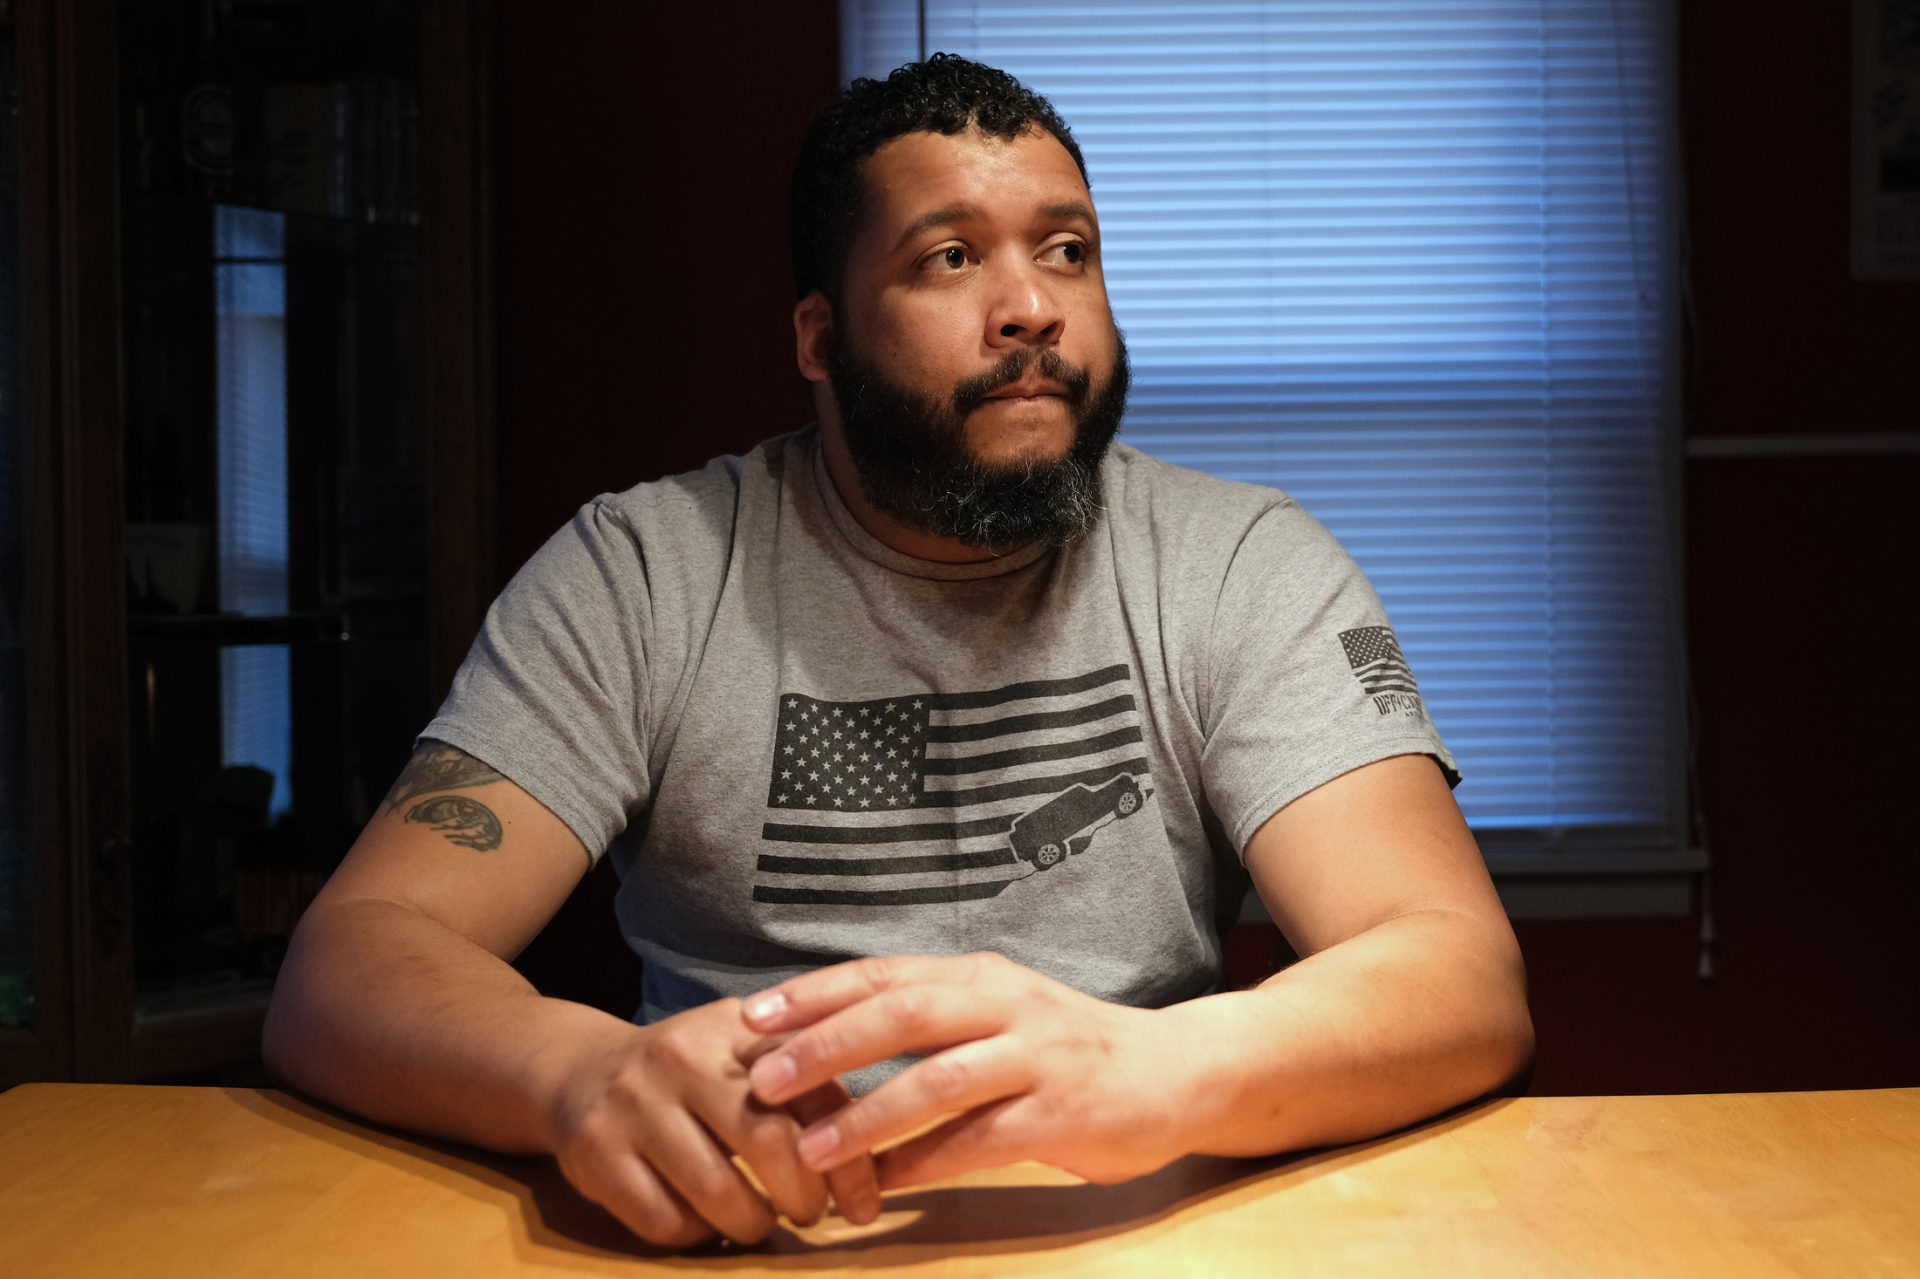 Ronald Stanley Webb, Jr, nicknamed Stosh, talks while in his home Jan. 16, 2020, in Deer Lake, Pennsylvania. Webb was subjected to a racial slur while at Port Clinton Fire Company.